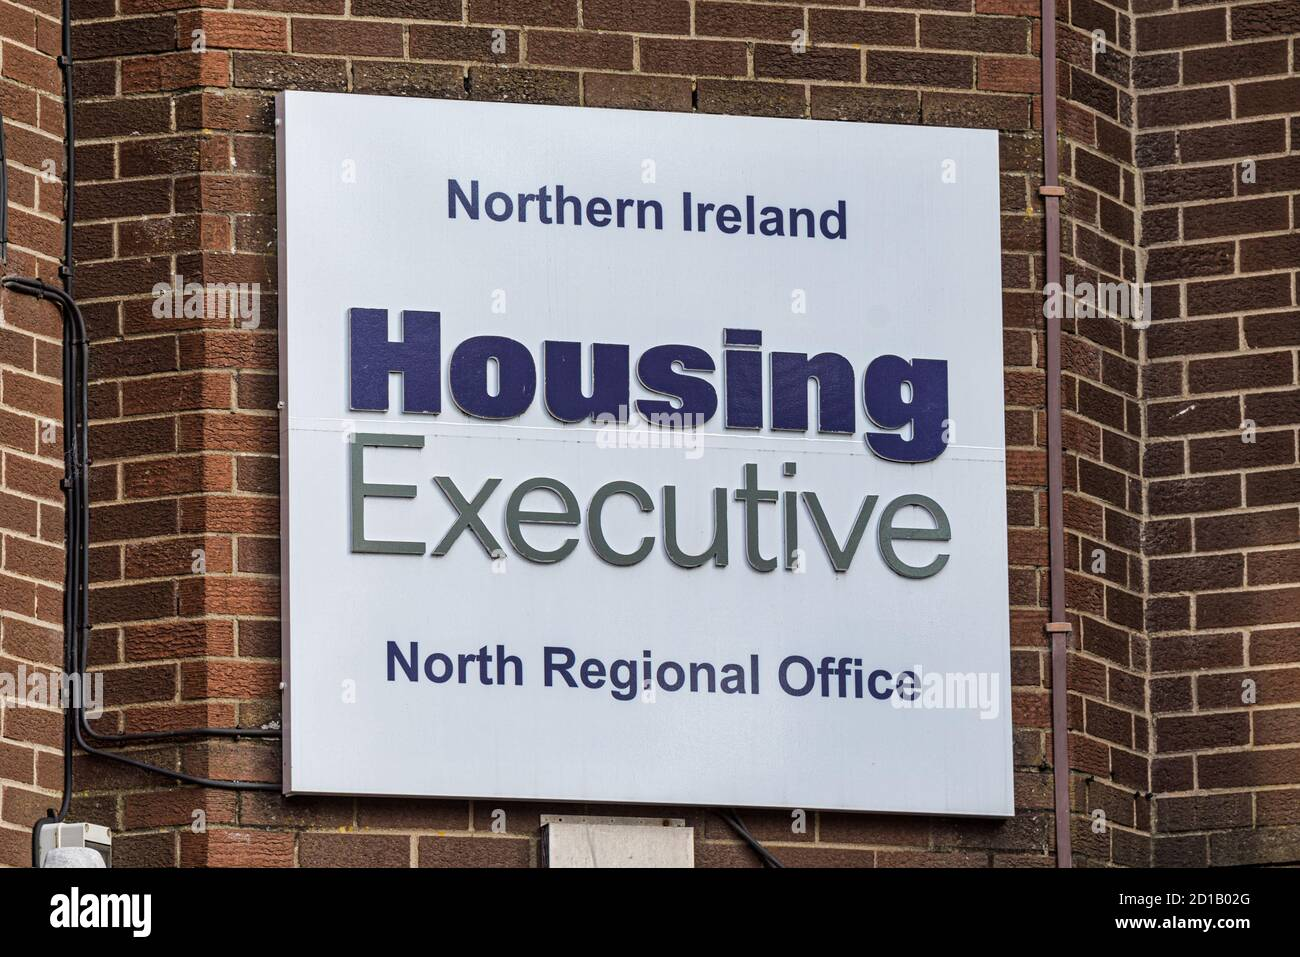 Derry, Northern Ireland- Sept 27, 2020: The sign for Northern Ireland Housing Executive in Derry. Stock Photo